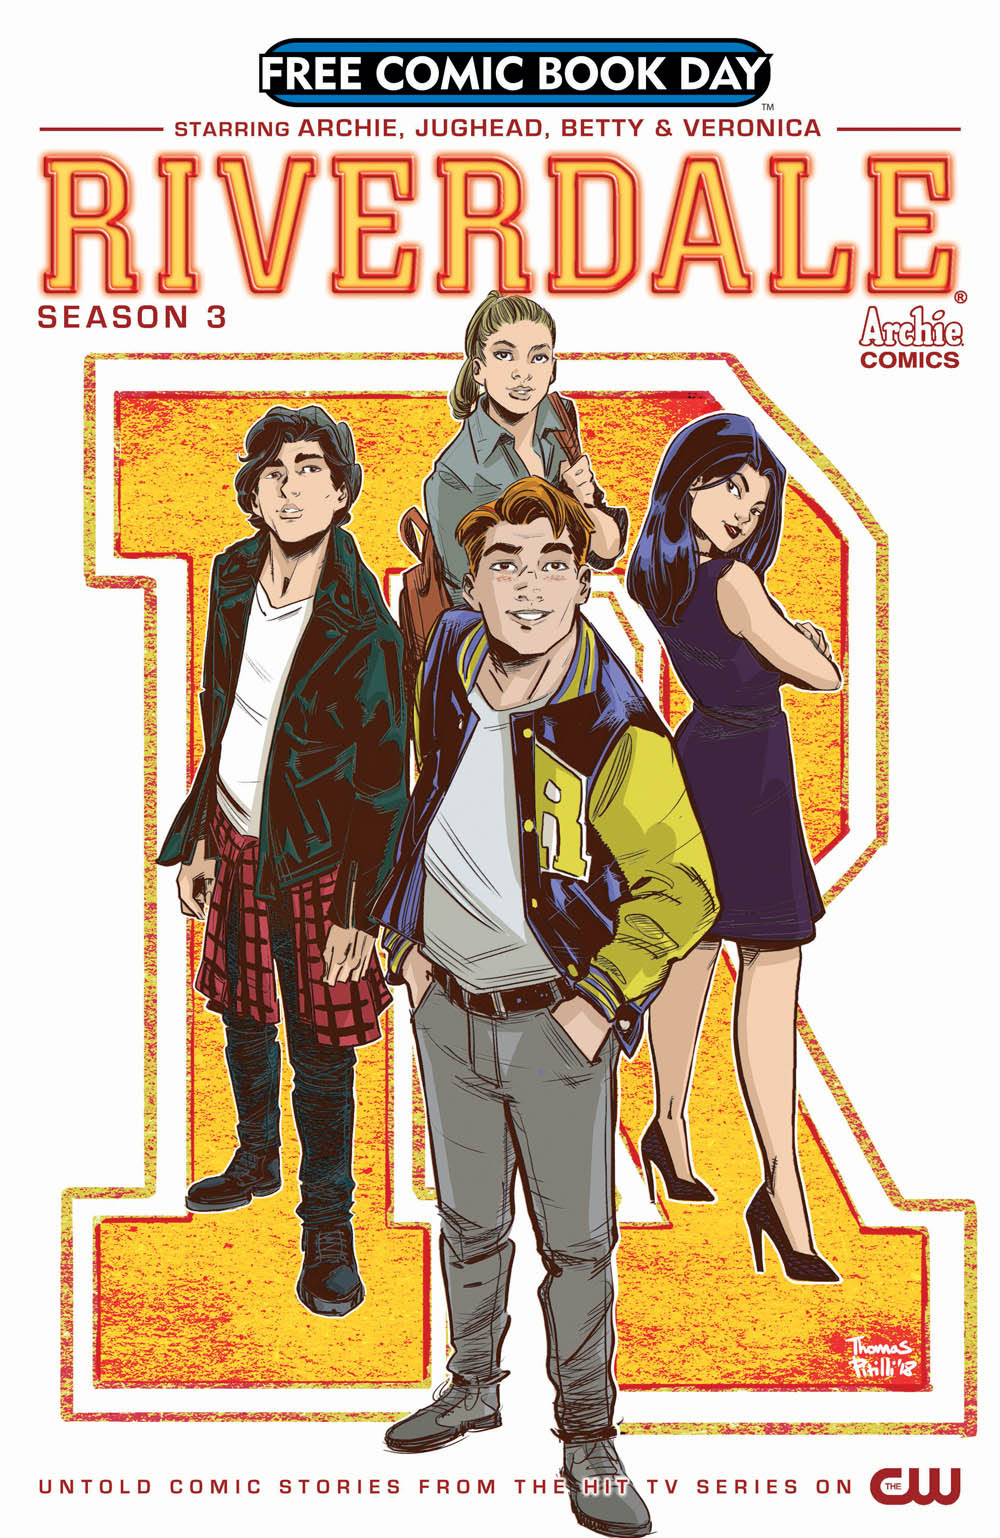 Riverdale Season 3 #1: FCBD